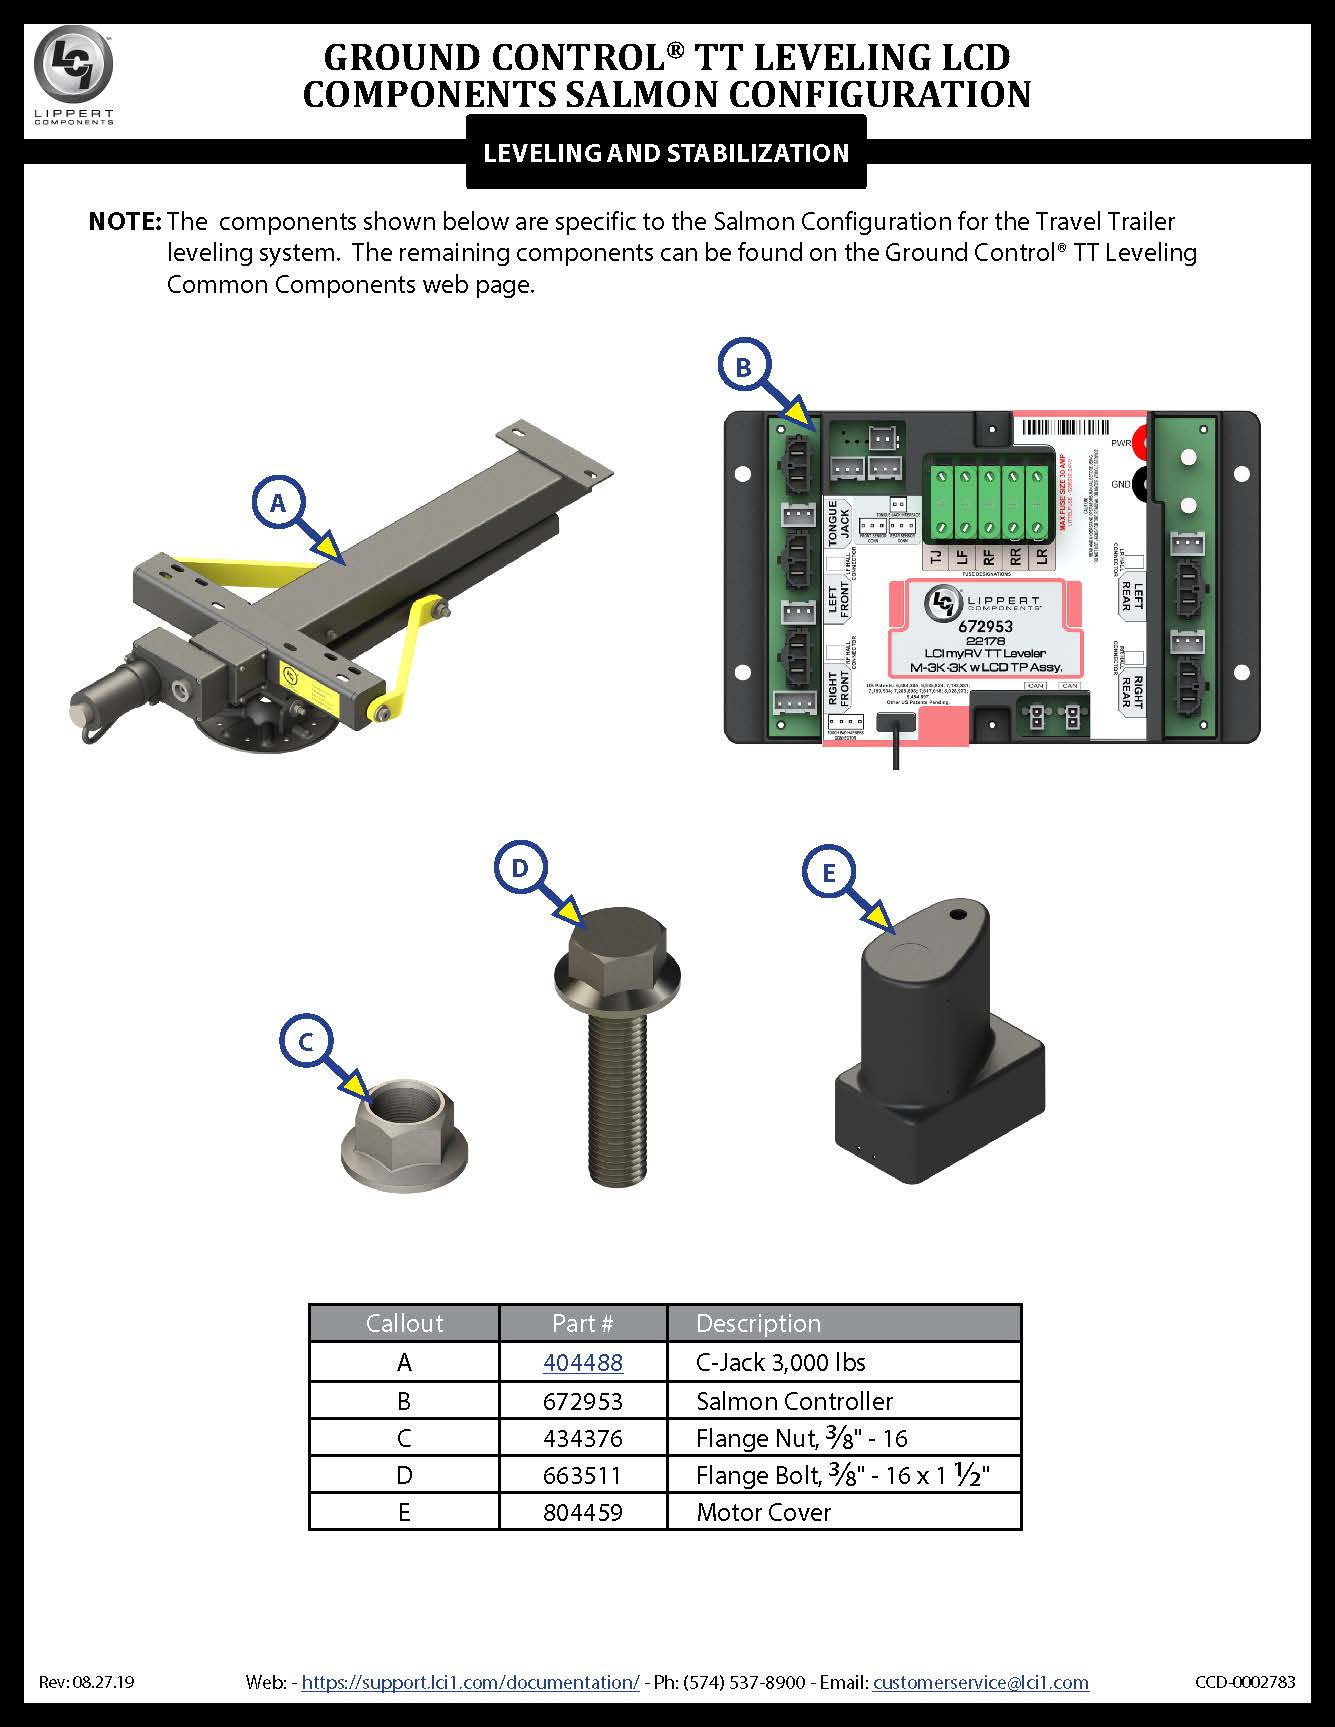 Ground Control® TT Leveling LCD Salmon Configuration Components